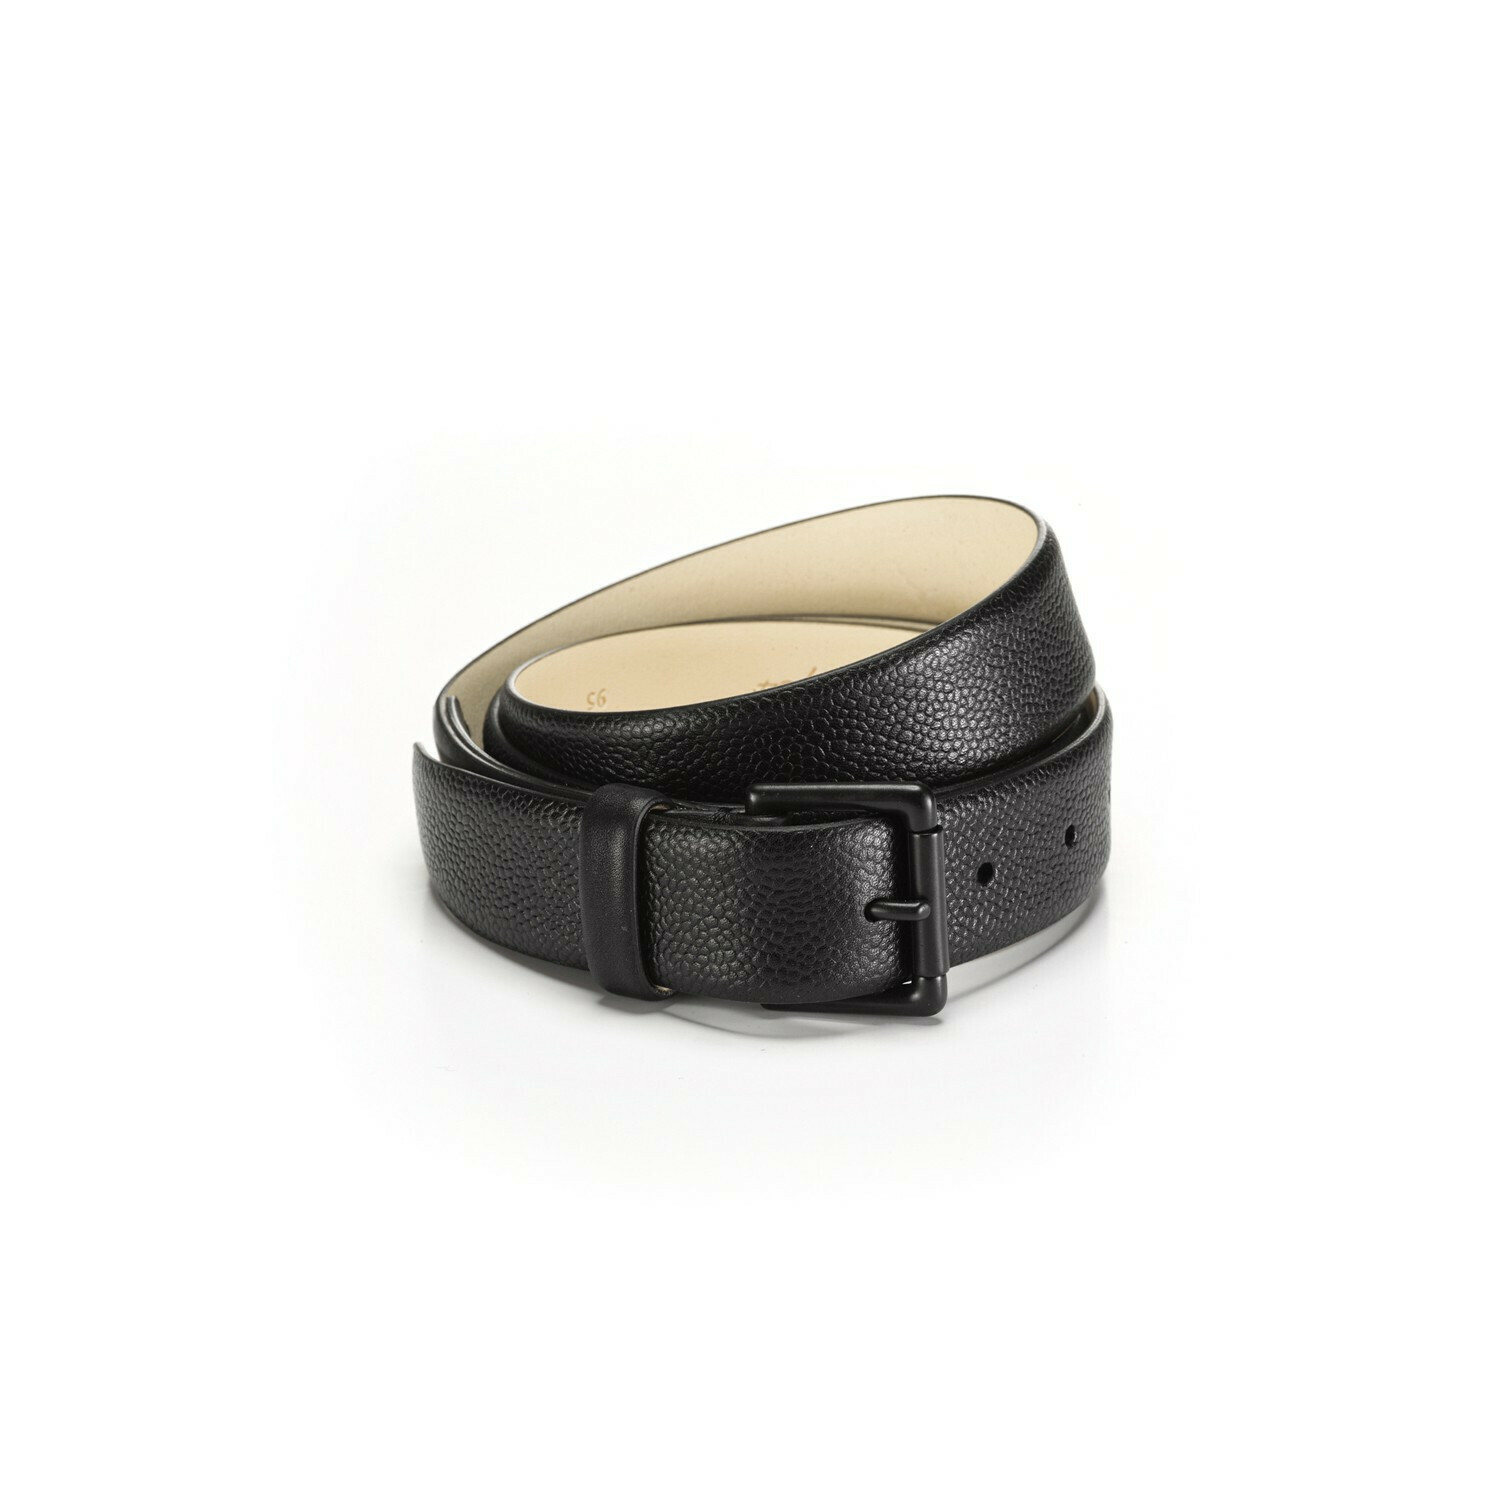 BELT Black Anilcalf/Beluga